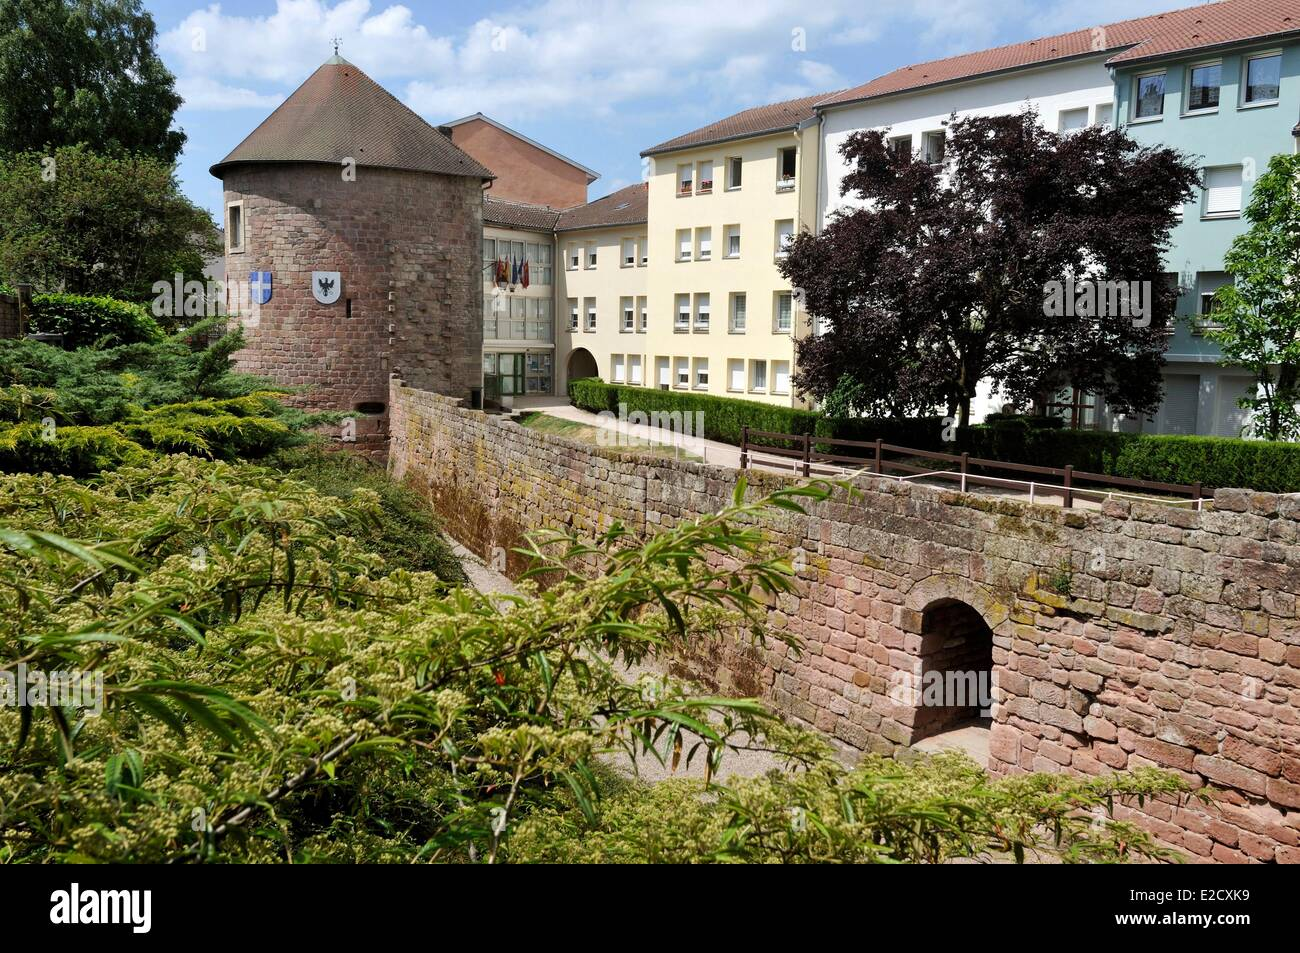 France Vosges Epinal Musee Du Chapitre In An Old Medieval Tower Walls Stock Photo Alamy